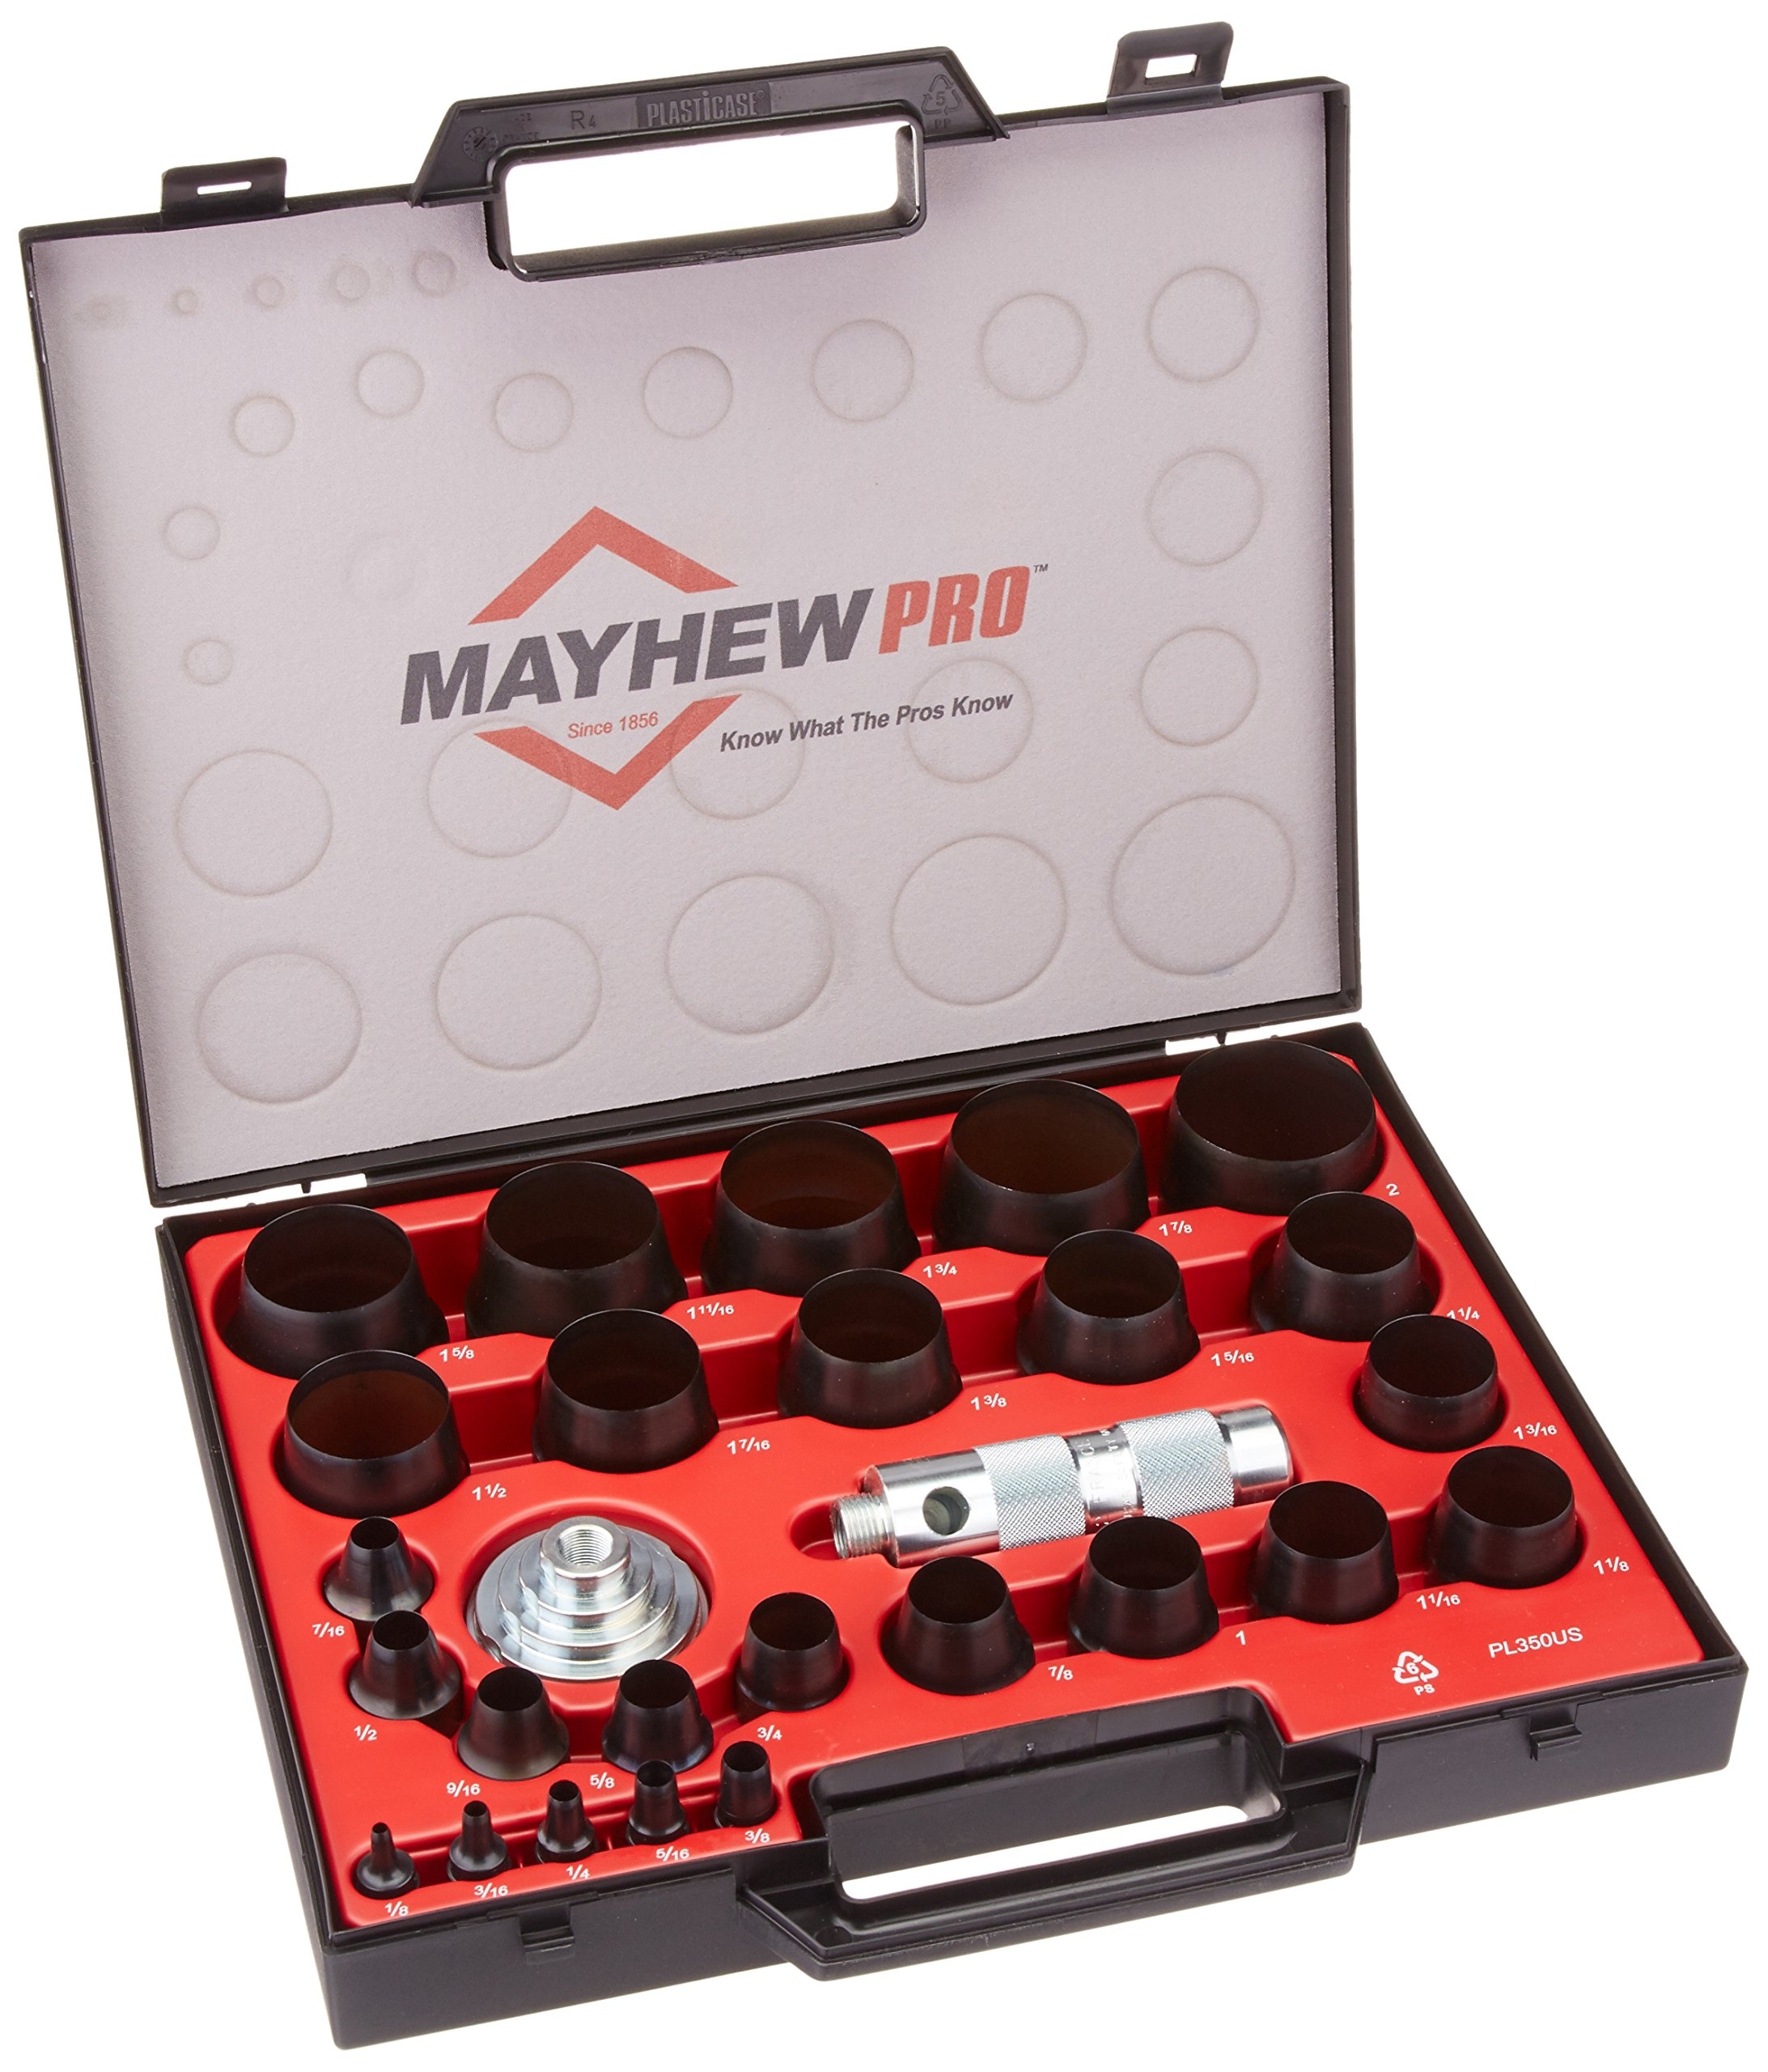 Mayhew Pro 66002 1/8-Inch to 2-Inch Imperial SAE Hollow Punch Set by Mayhew Tools